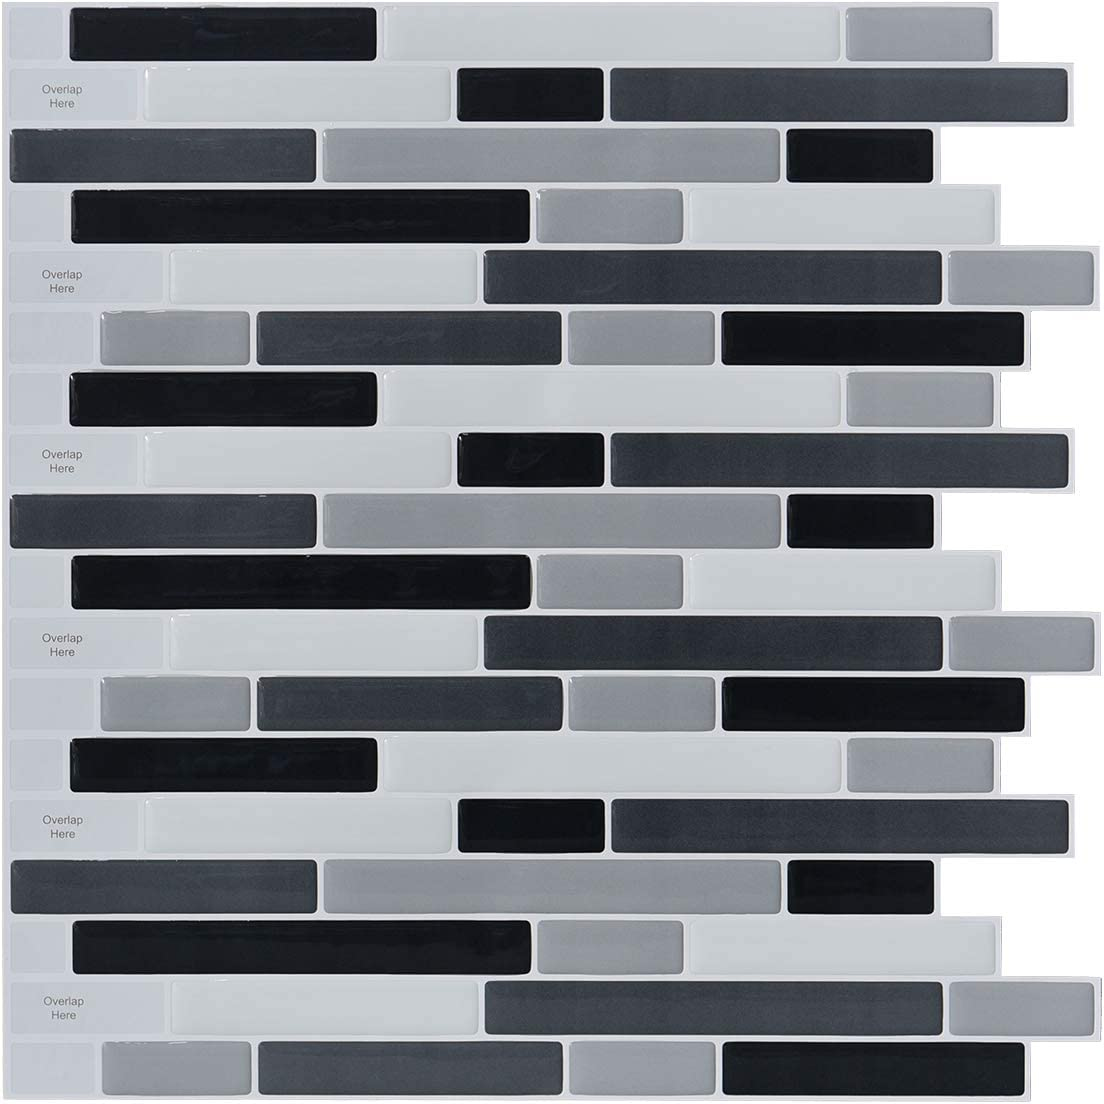 Amazon Com Longking 10 Sheets Peel And Stick Backsplash Tile 3d Self Adhesive Tile Stickers For Kitchen Bathroom Counter Top Mirror Background Grey Black White Home Kitchen